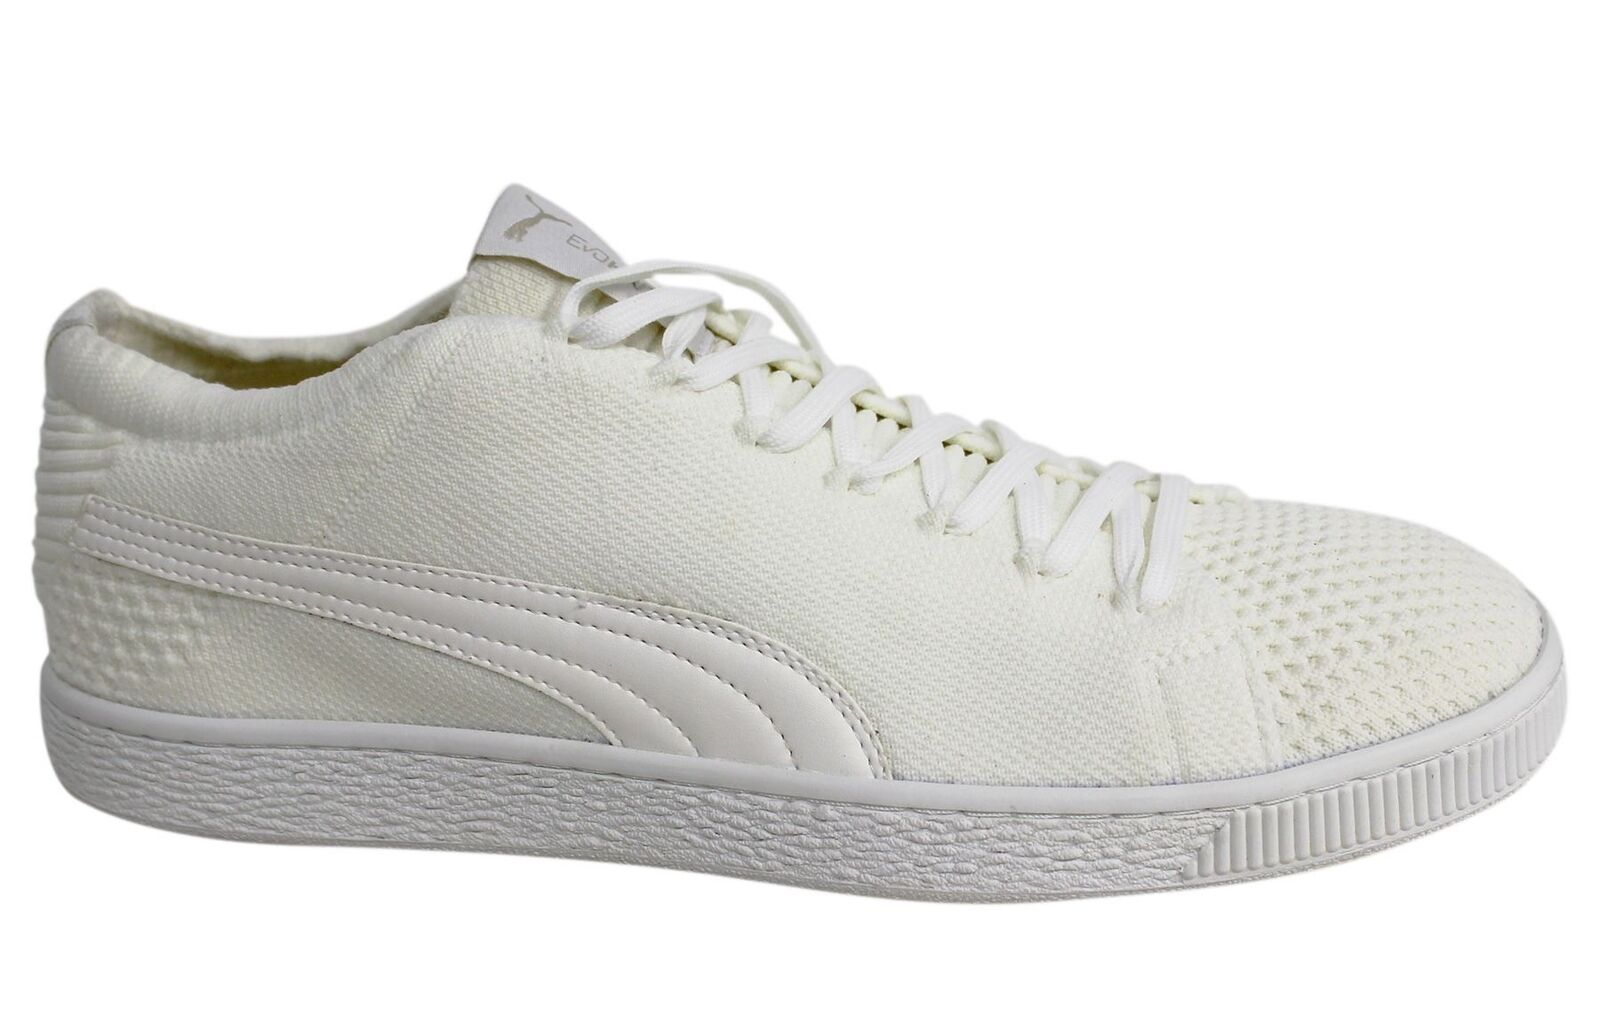 Puma Basket EvoKNIT 3D Lace Up Off White Mens Textile Trainers 363650 02 M11 New shoes for men and women, limited time discount